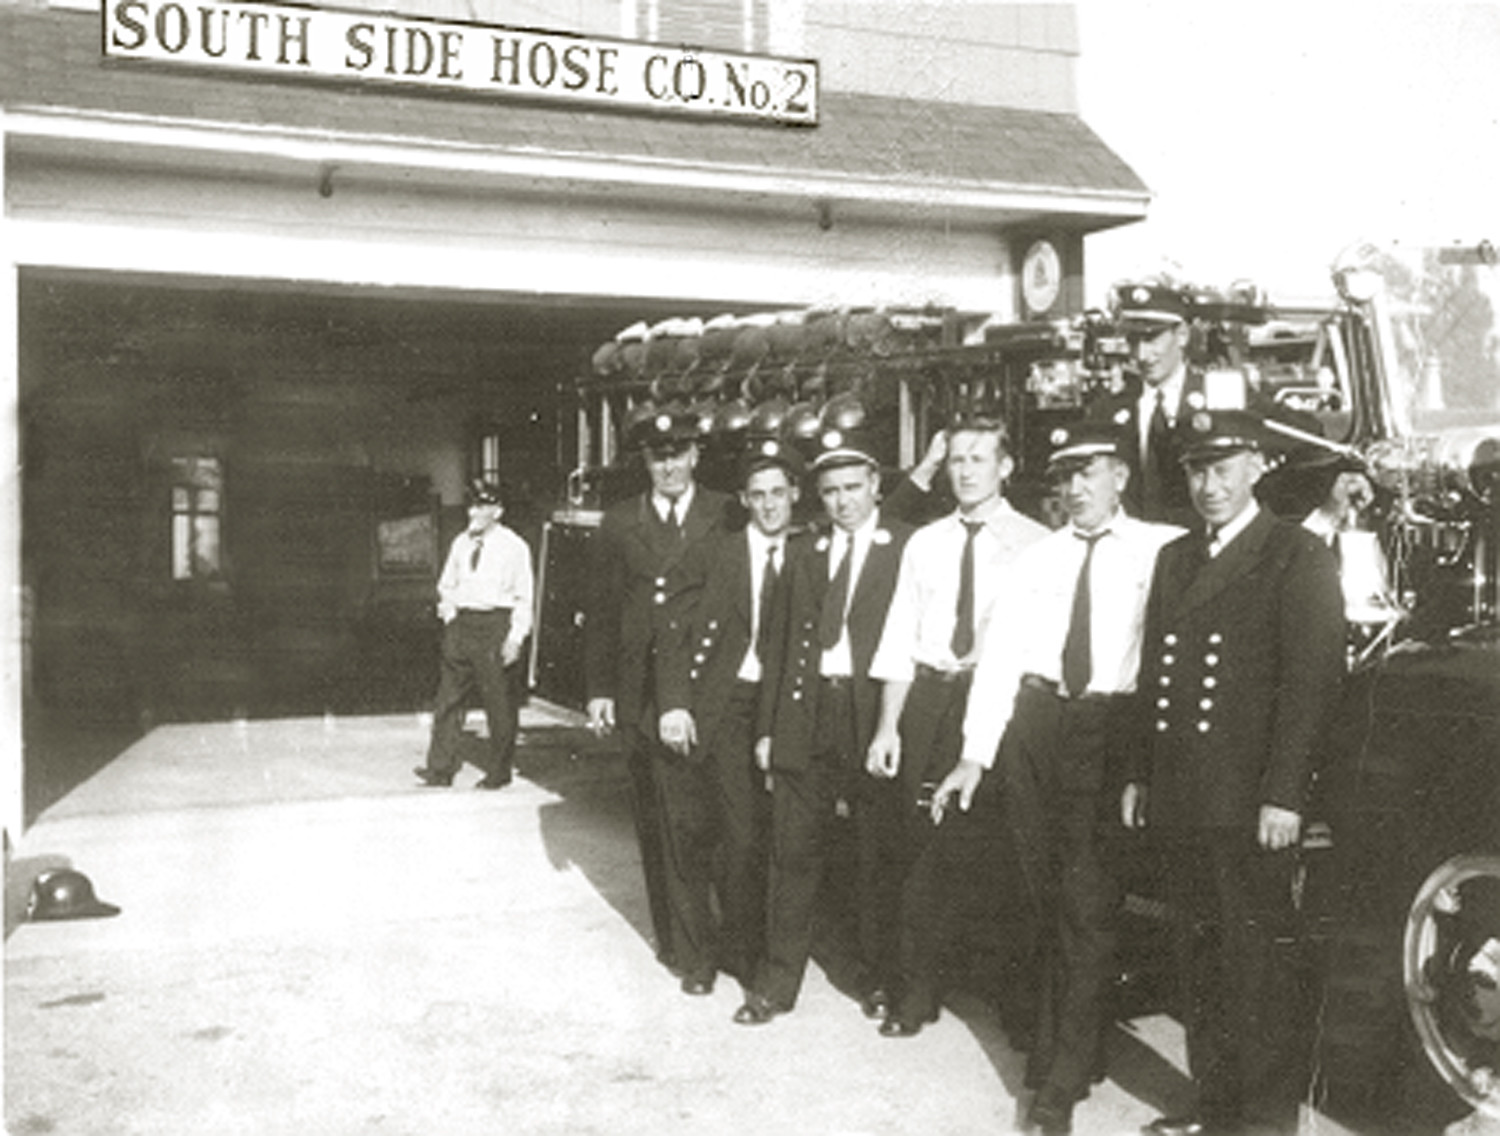 Members of Hose Company No. 2 in front of their original building in the 1950s.